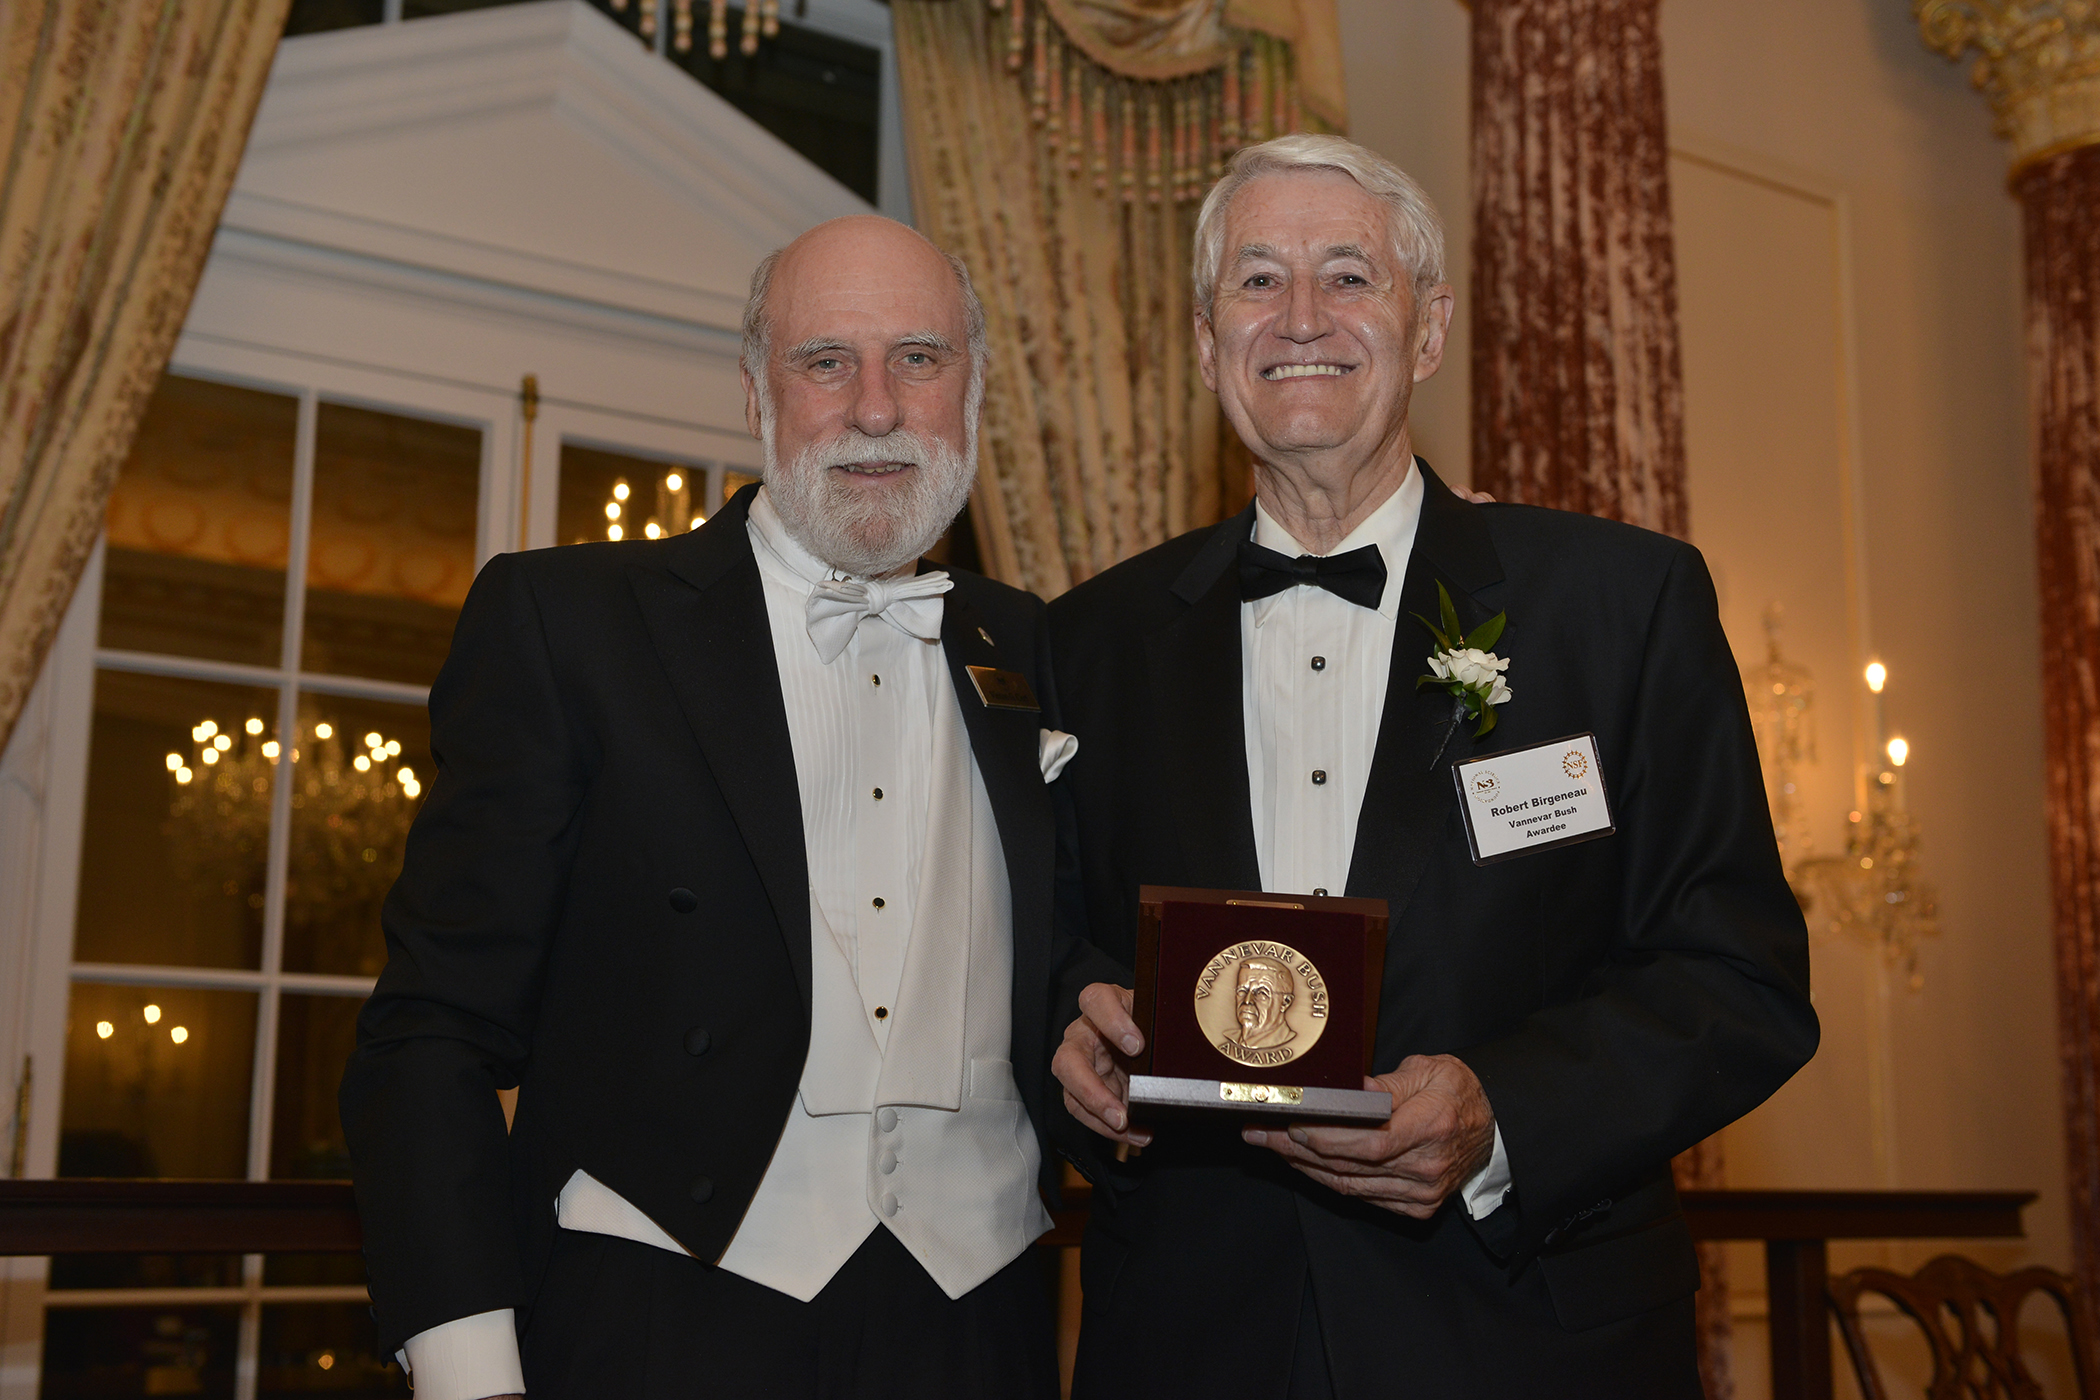 Image of Birgeneau and Cerf with Award Metal